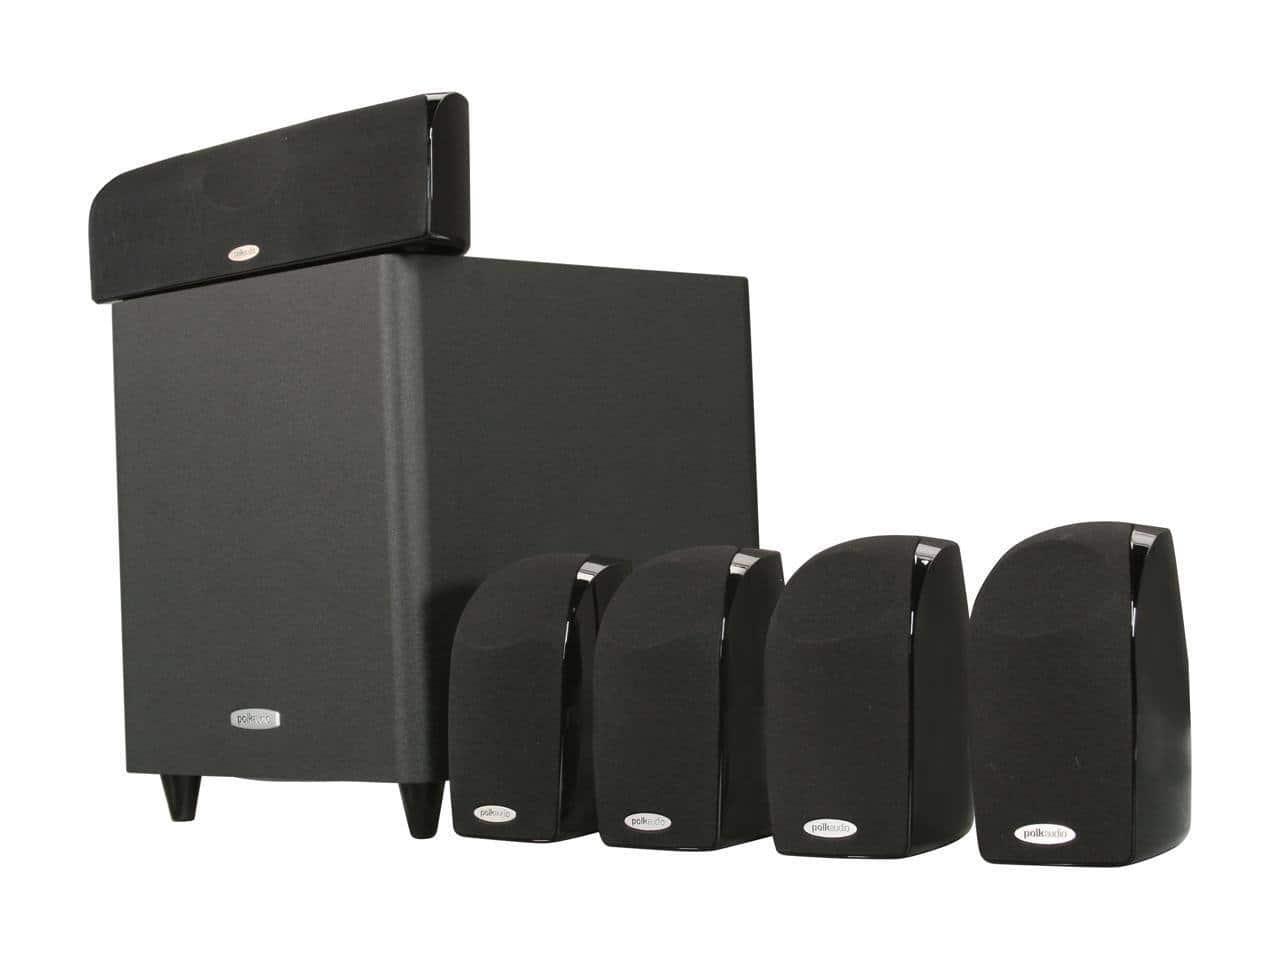 Polk Audio TL1600 5.1 Compact Surround Sound Home Theater System with Powered Subwoofer $149